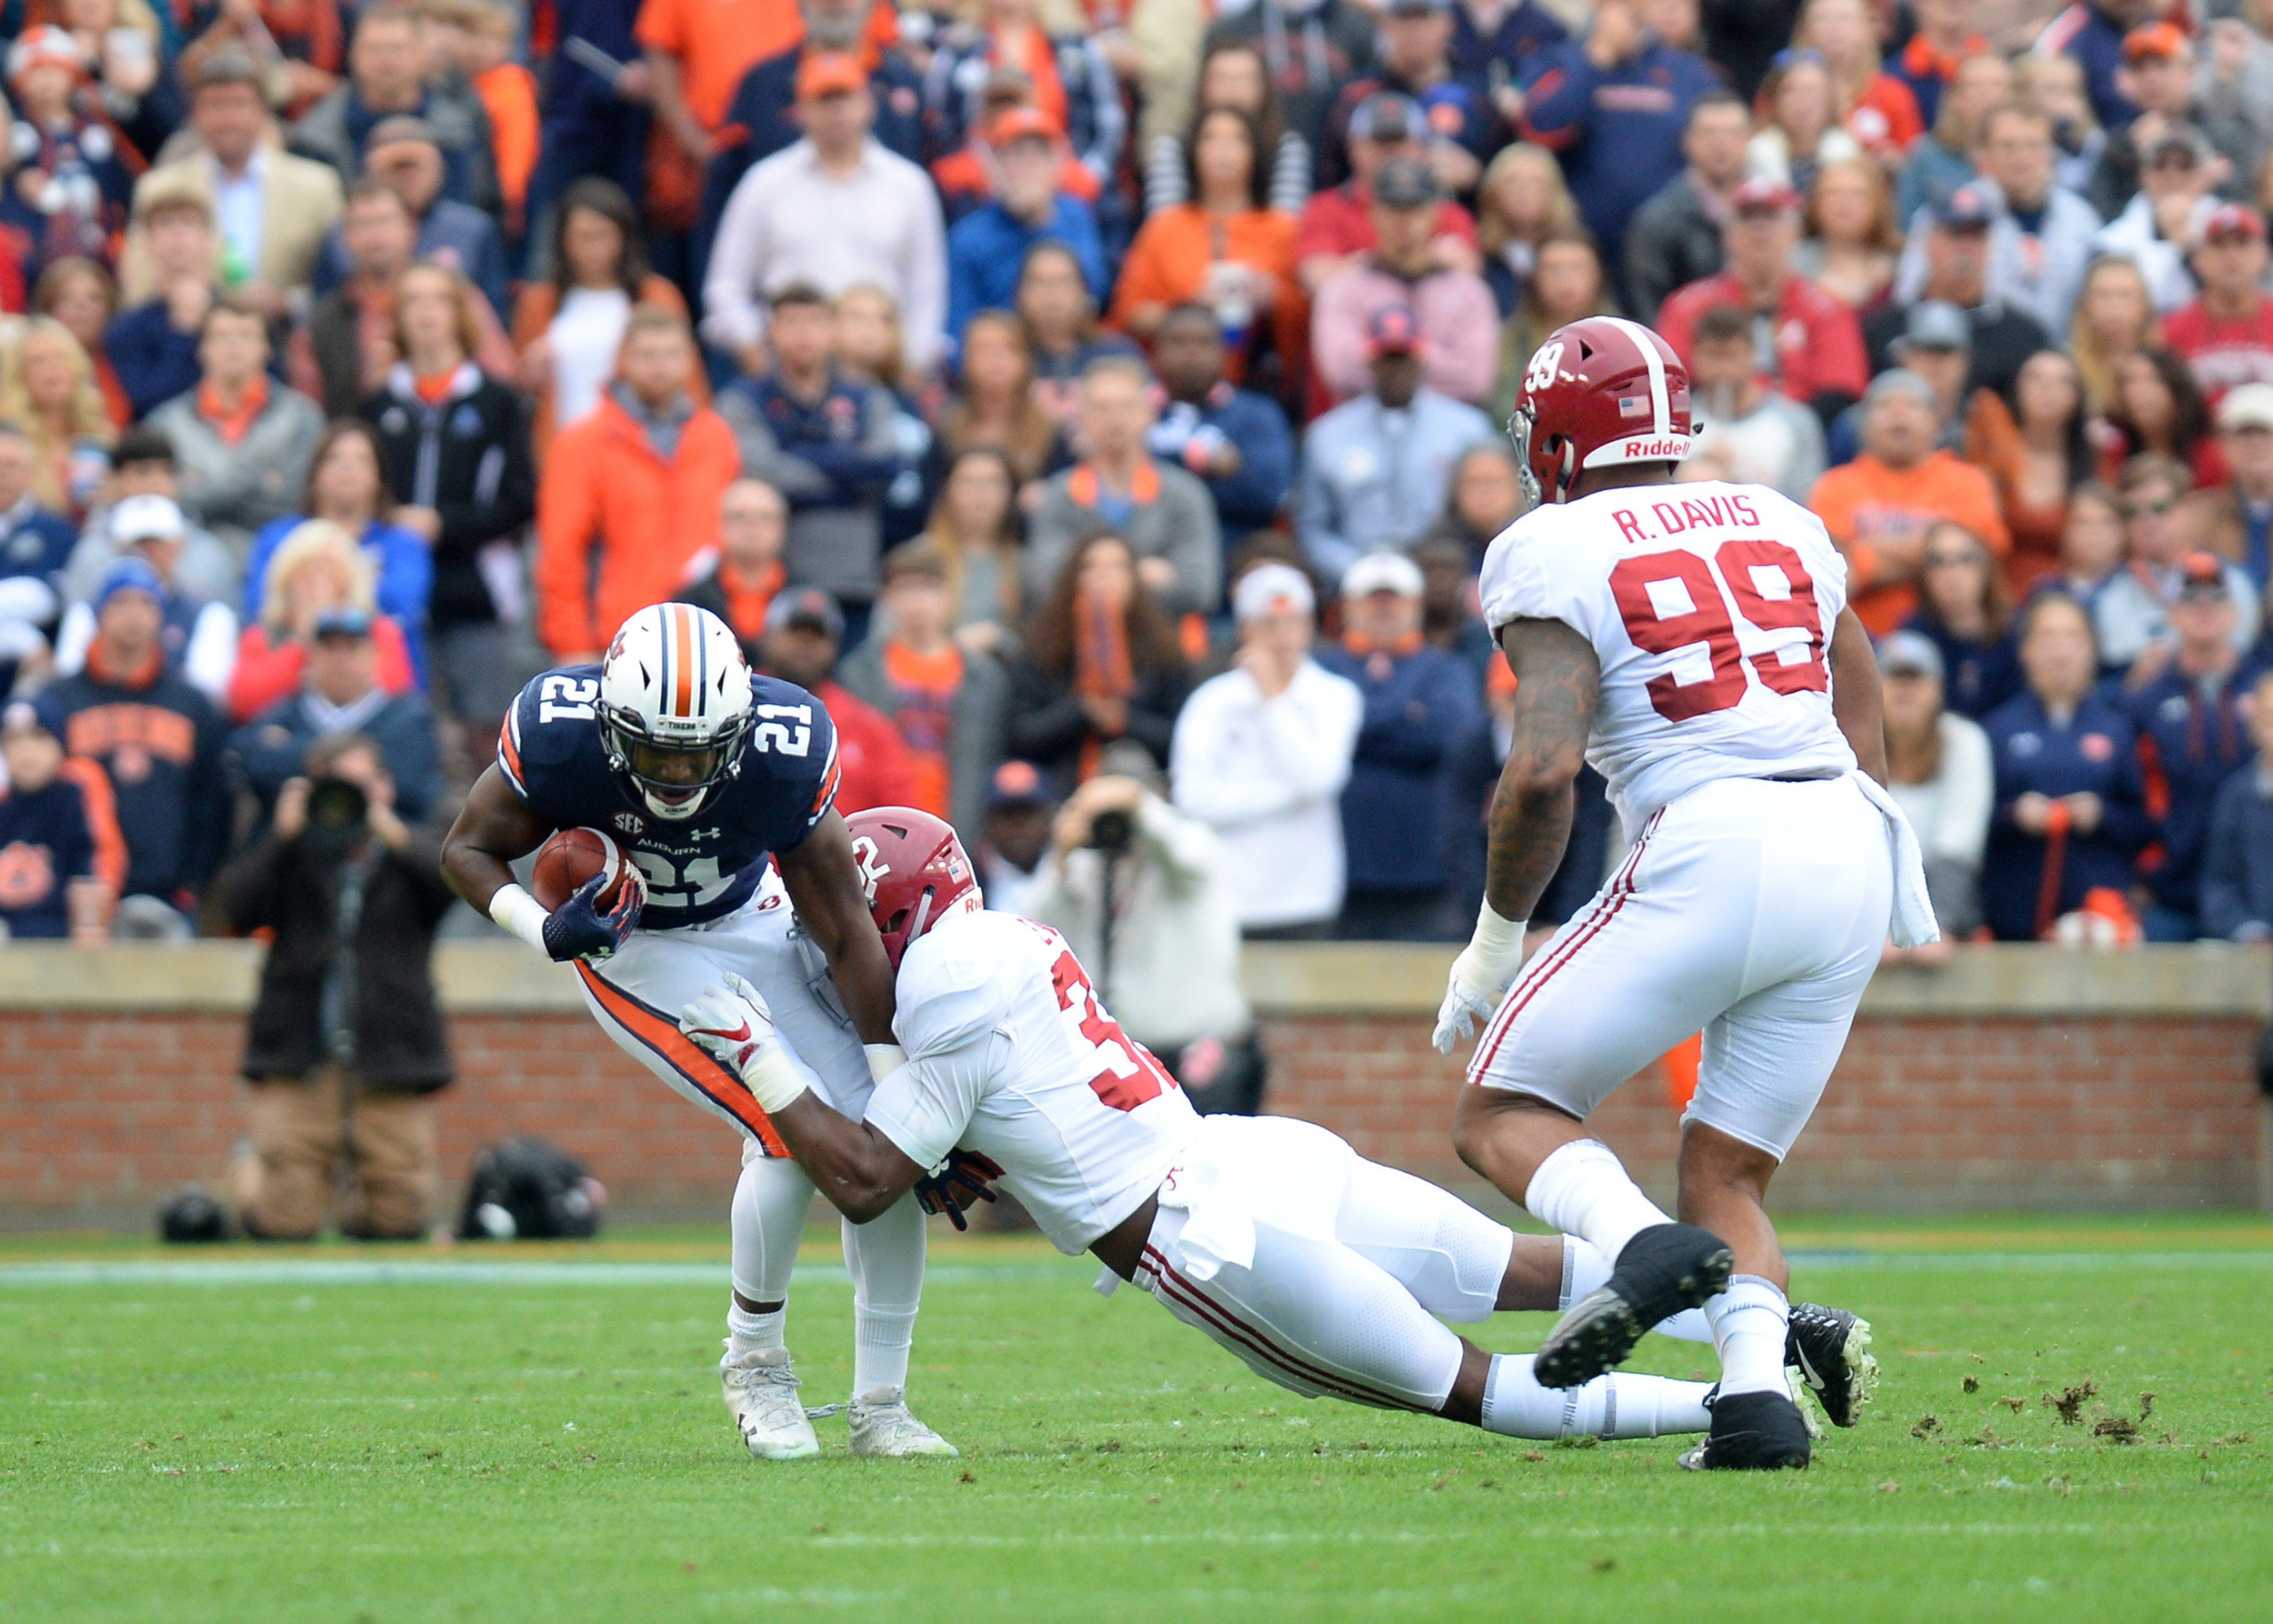 Auburn Tigers running back Kerryon Johnson is tackled by Alabama Crimson Tide linebacker Rashaan Evans (32) during the first half of NCAA football game on Nov. 25, 2017, at Jordan-Hare Stadium in Auburn, Ala. (Photo by Jeff Johnsey)